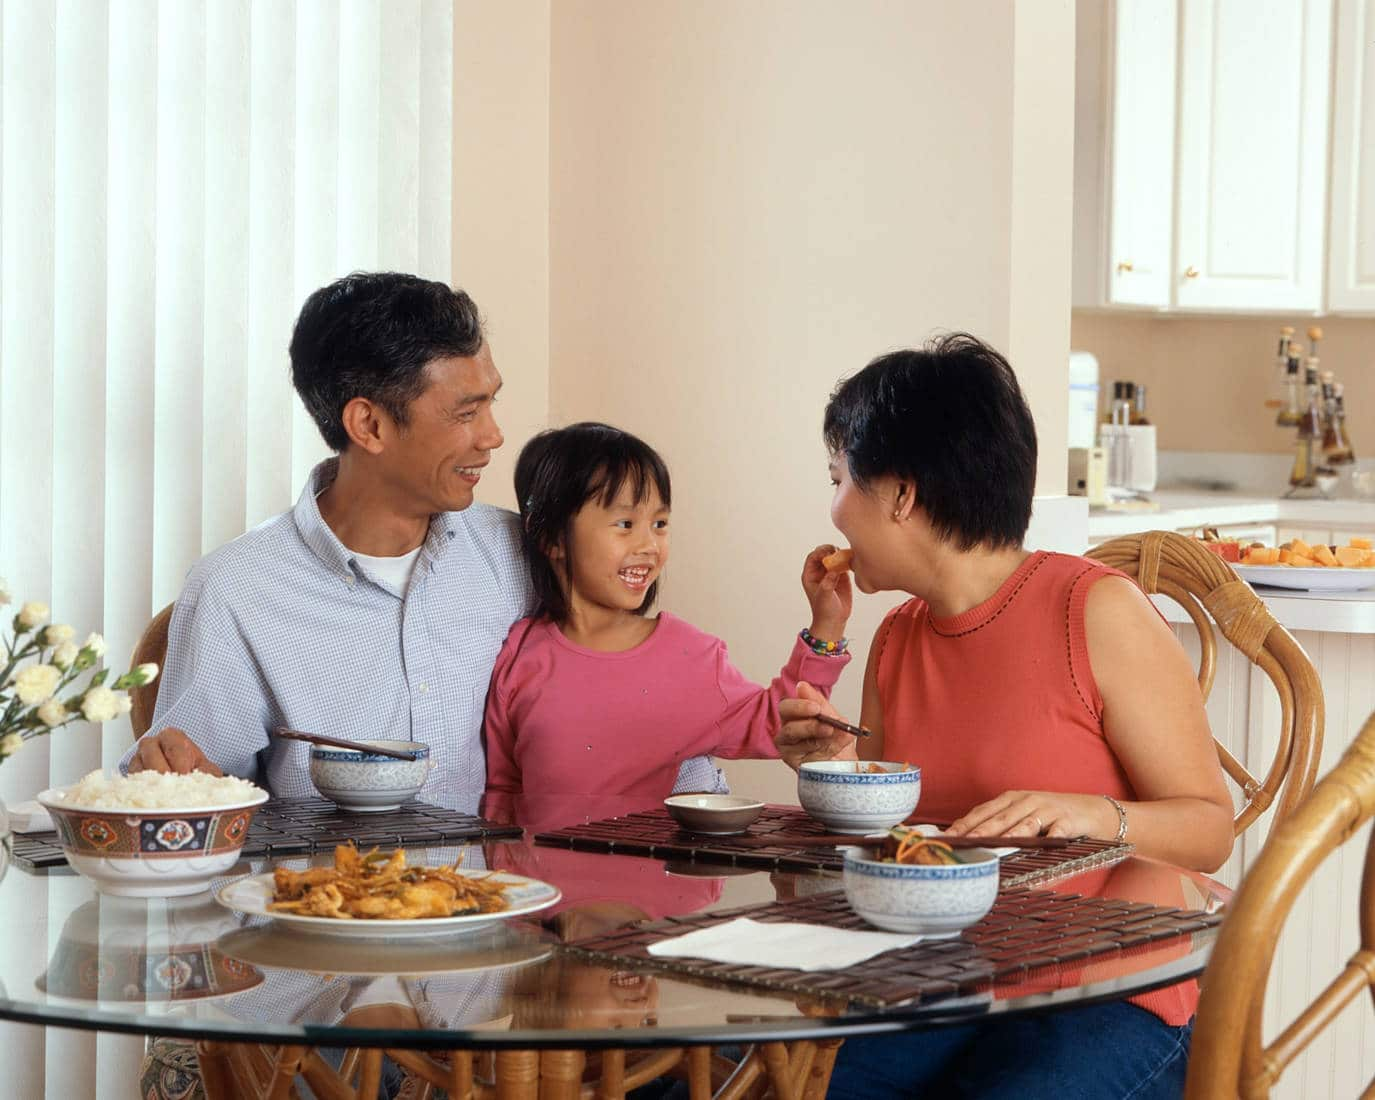 3 Genuine Ways to Create Connection During Family Date Night